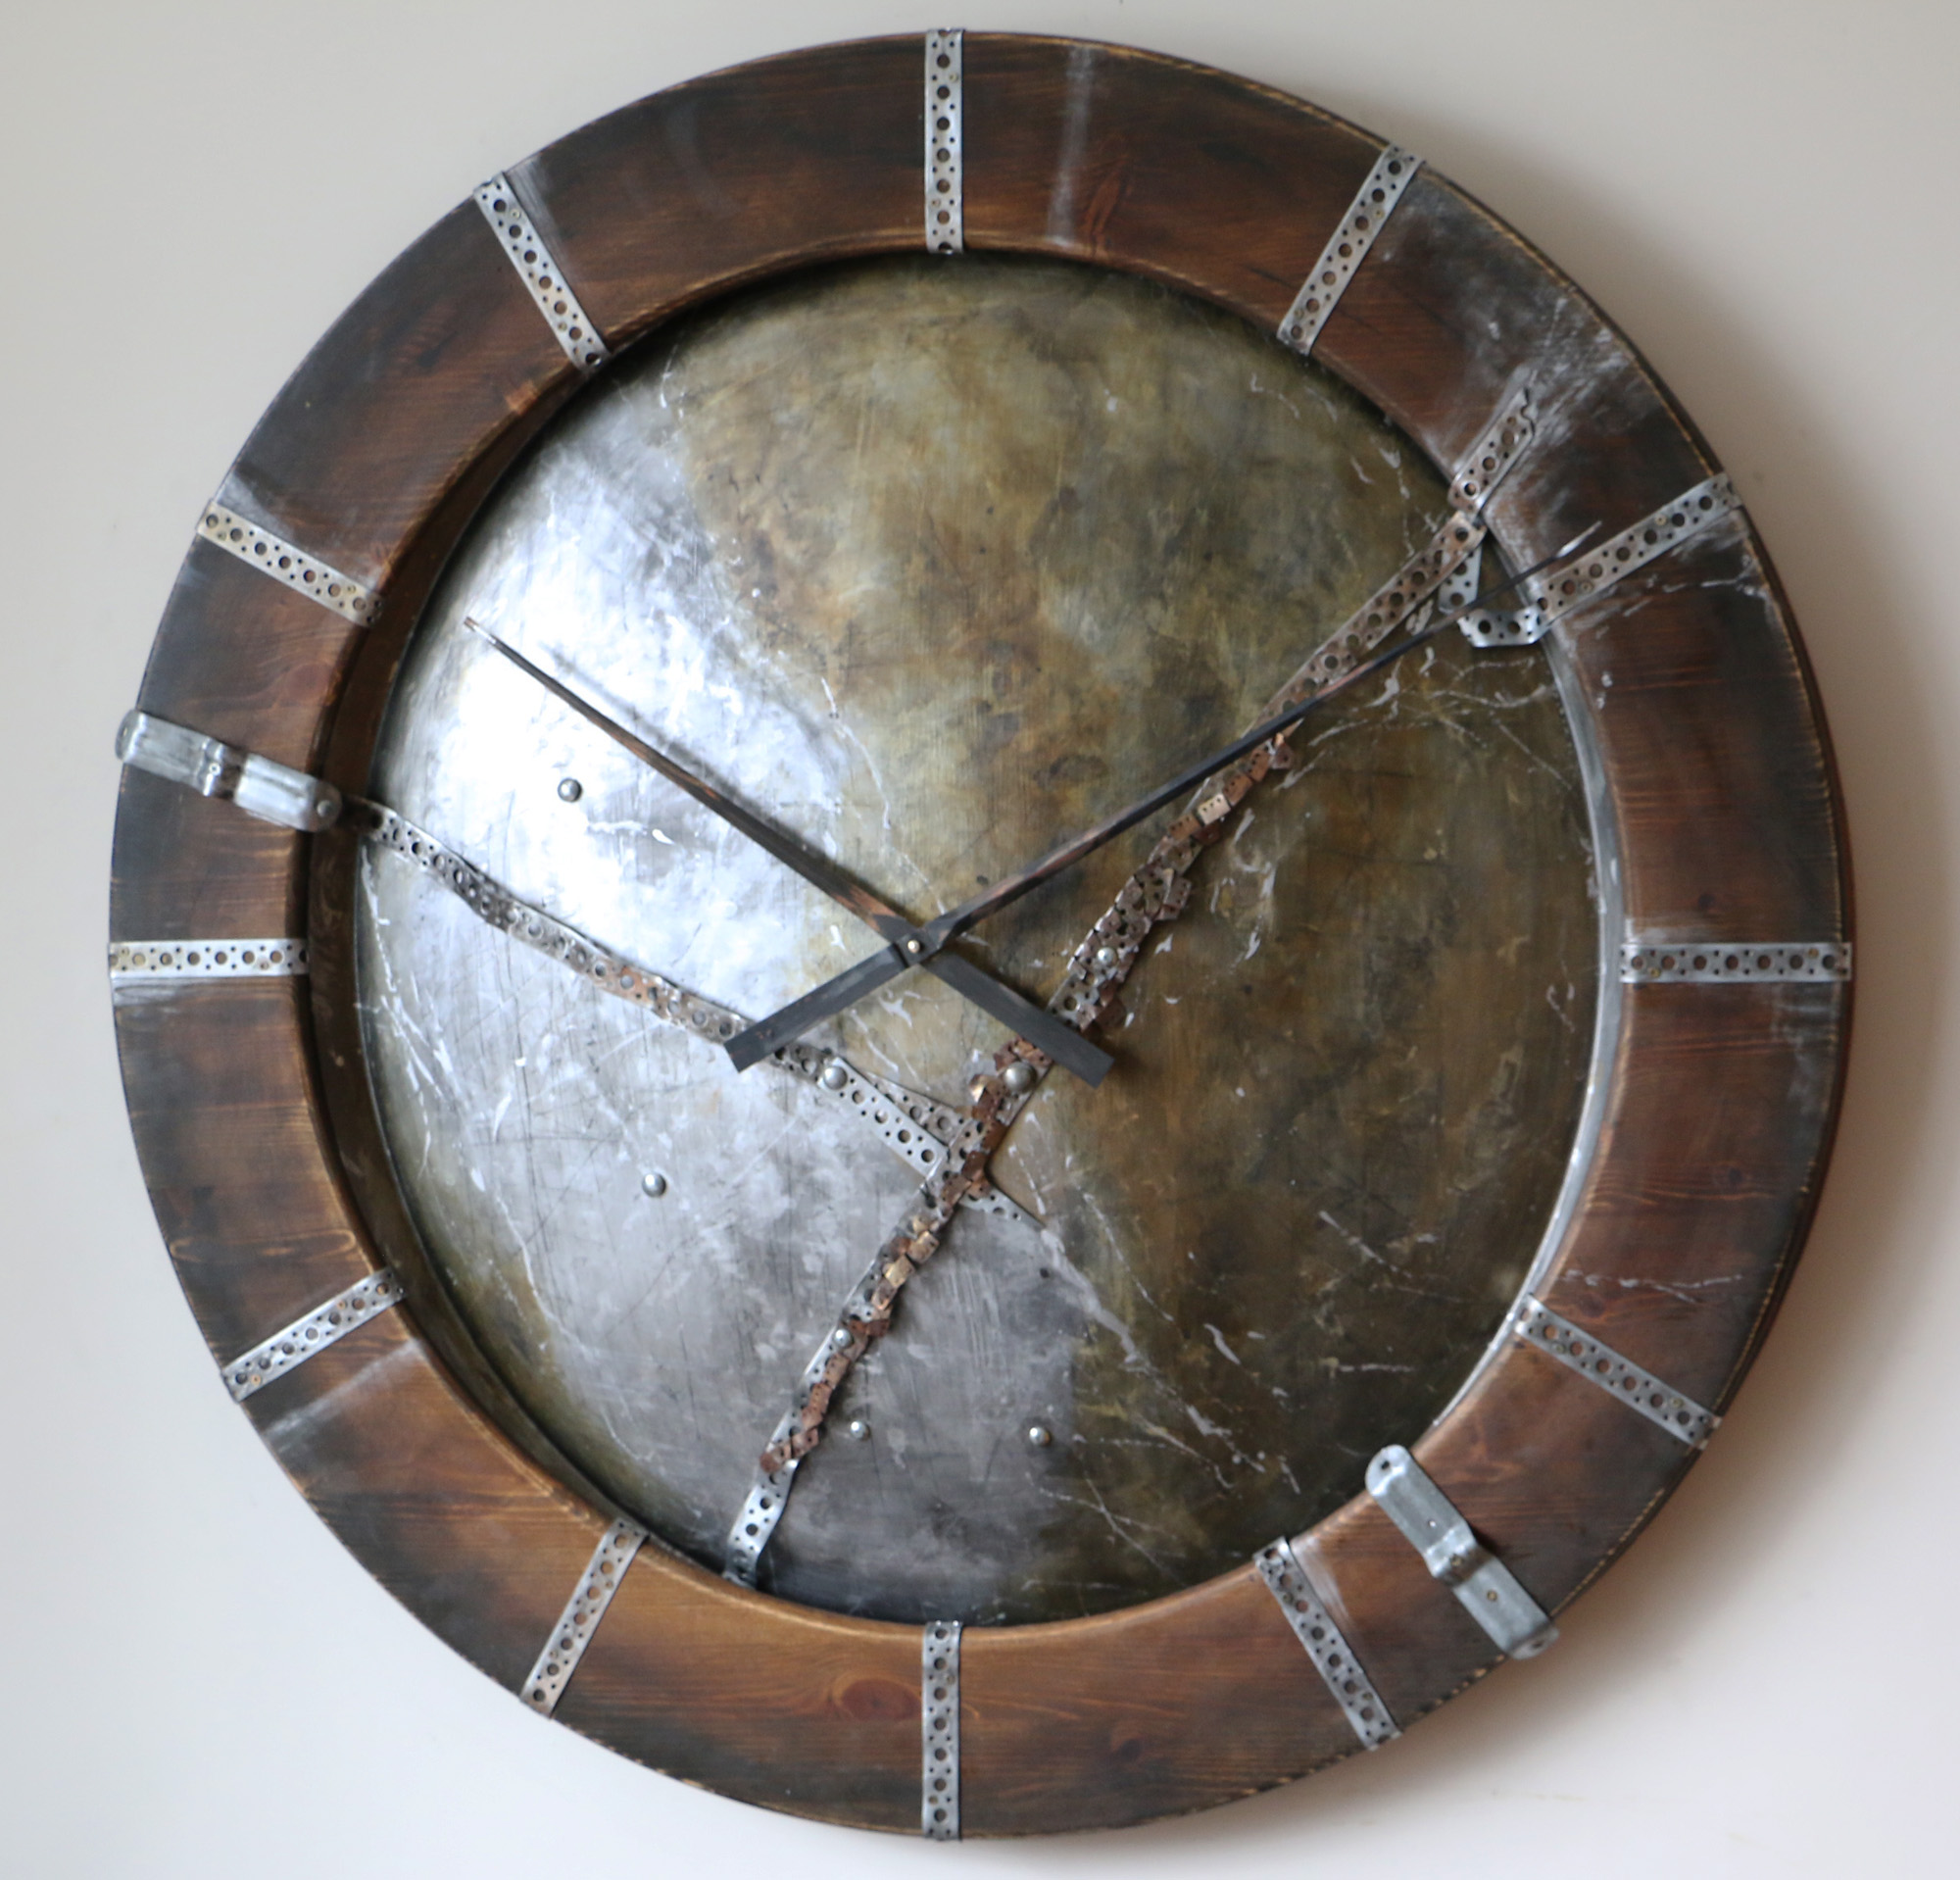 Extra Large Wooden Wall Clock Massive Handmade Wall Clocks New Design Trends